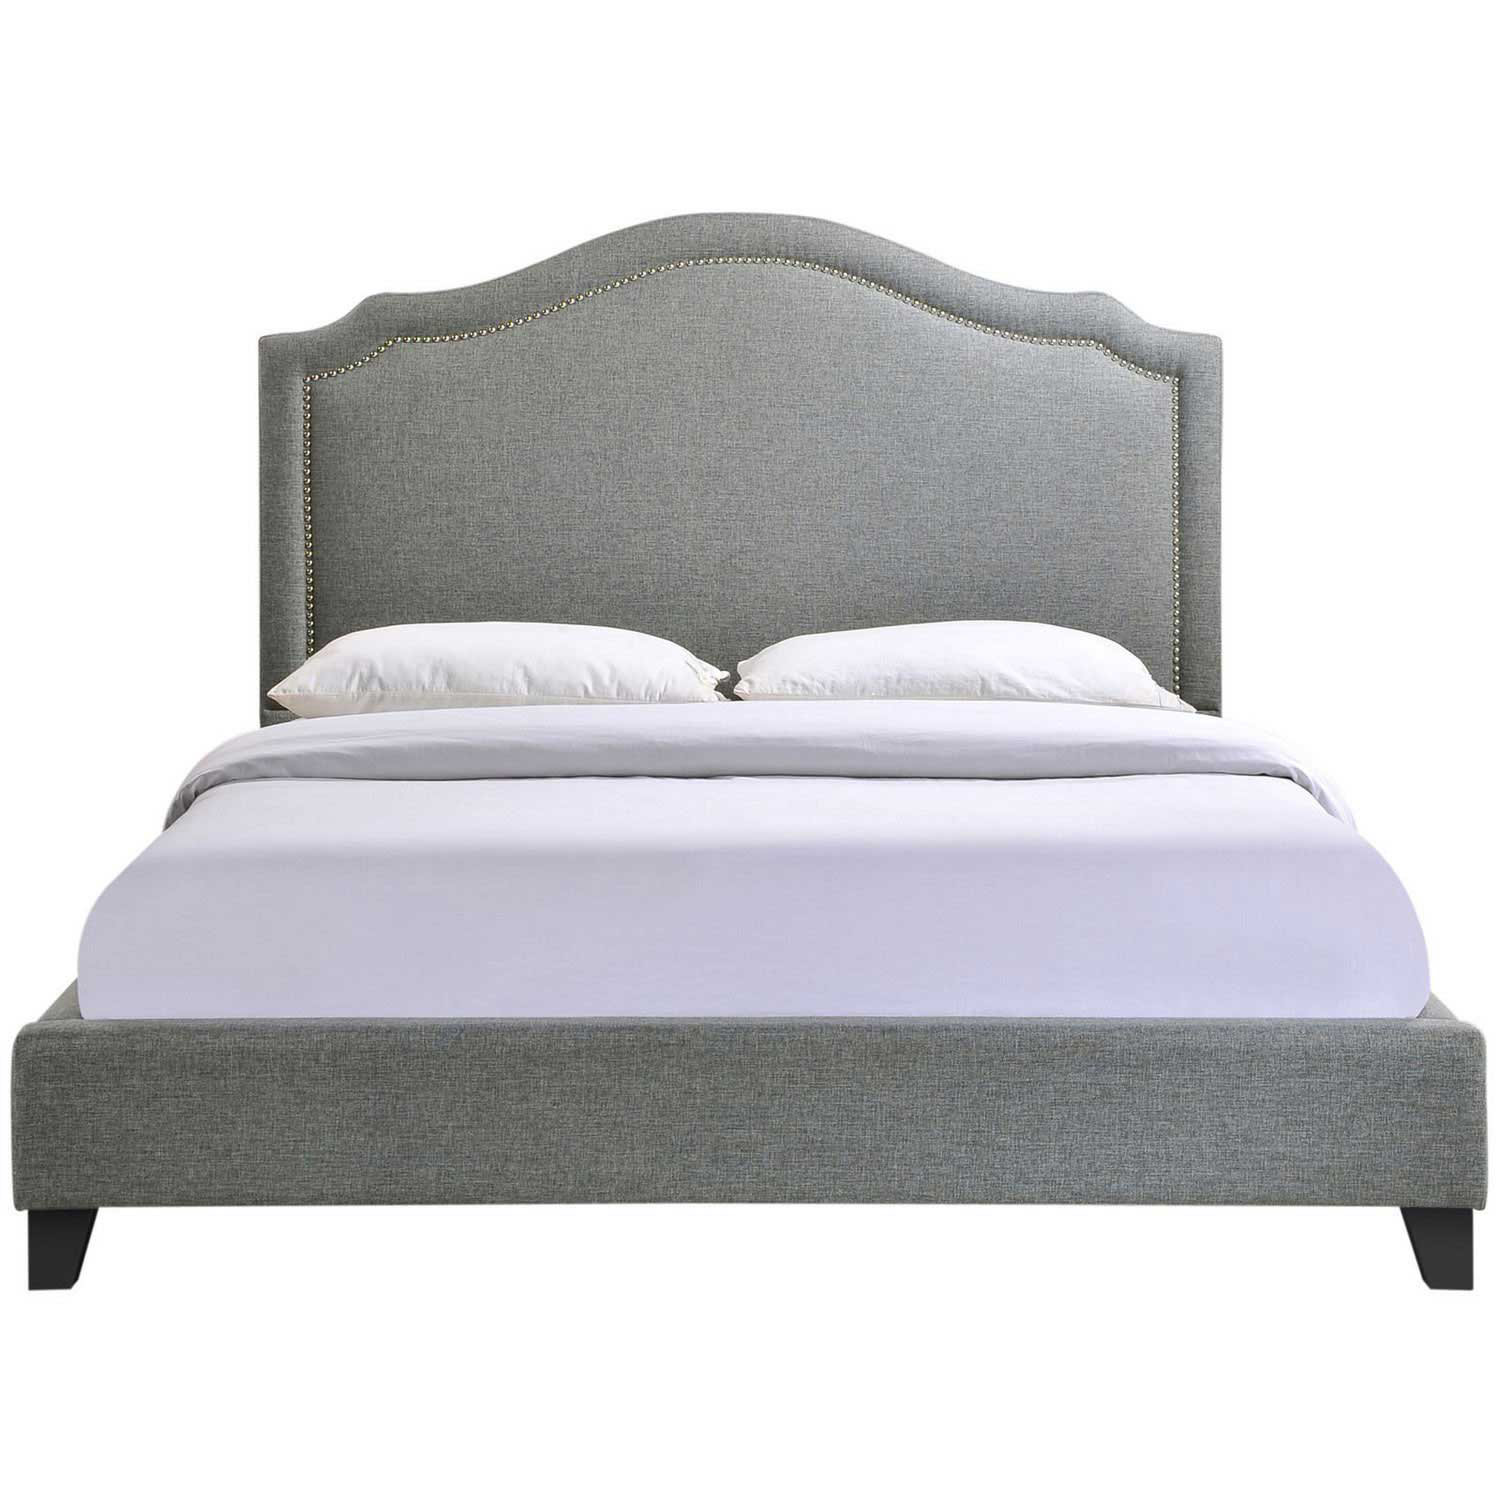 Modway Charlotte Queen Bed - Gray